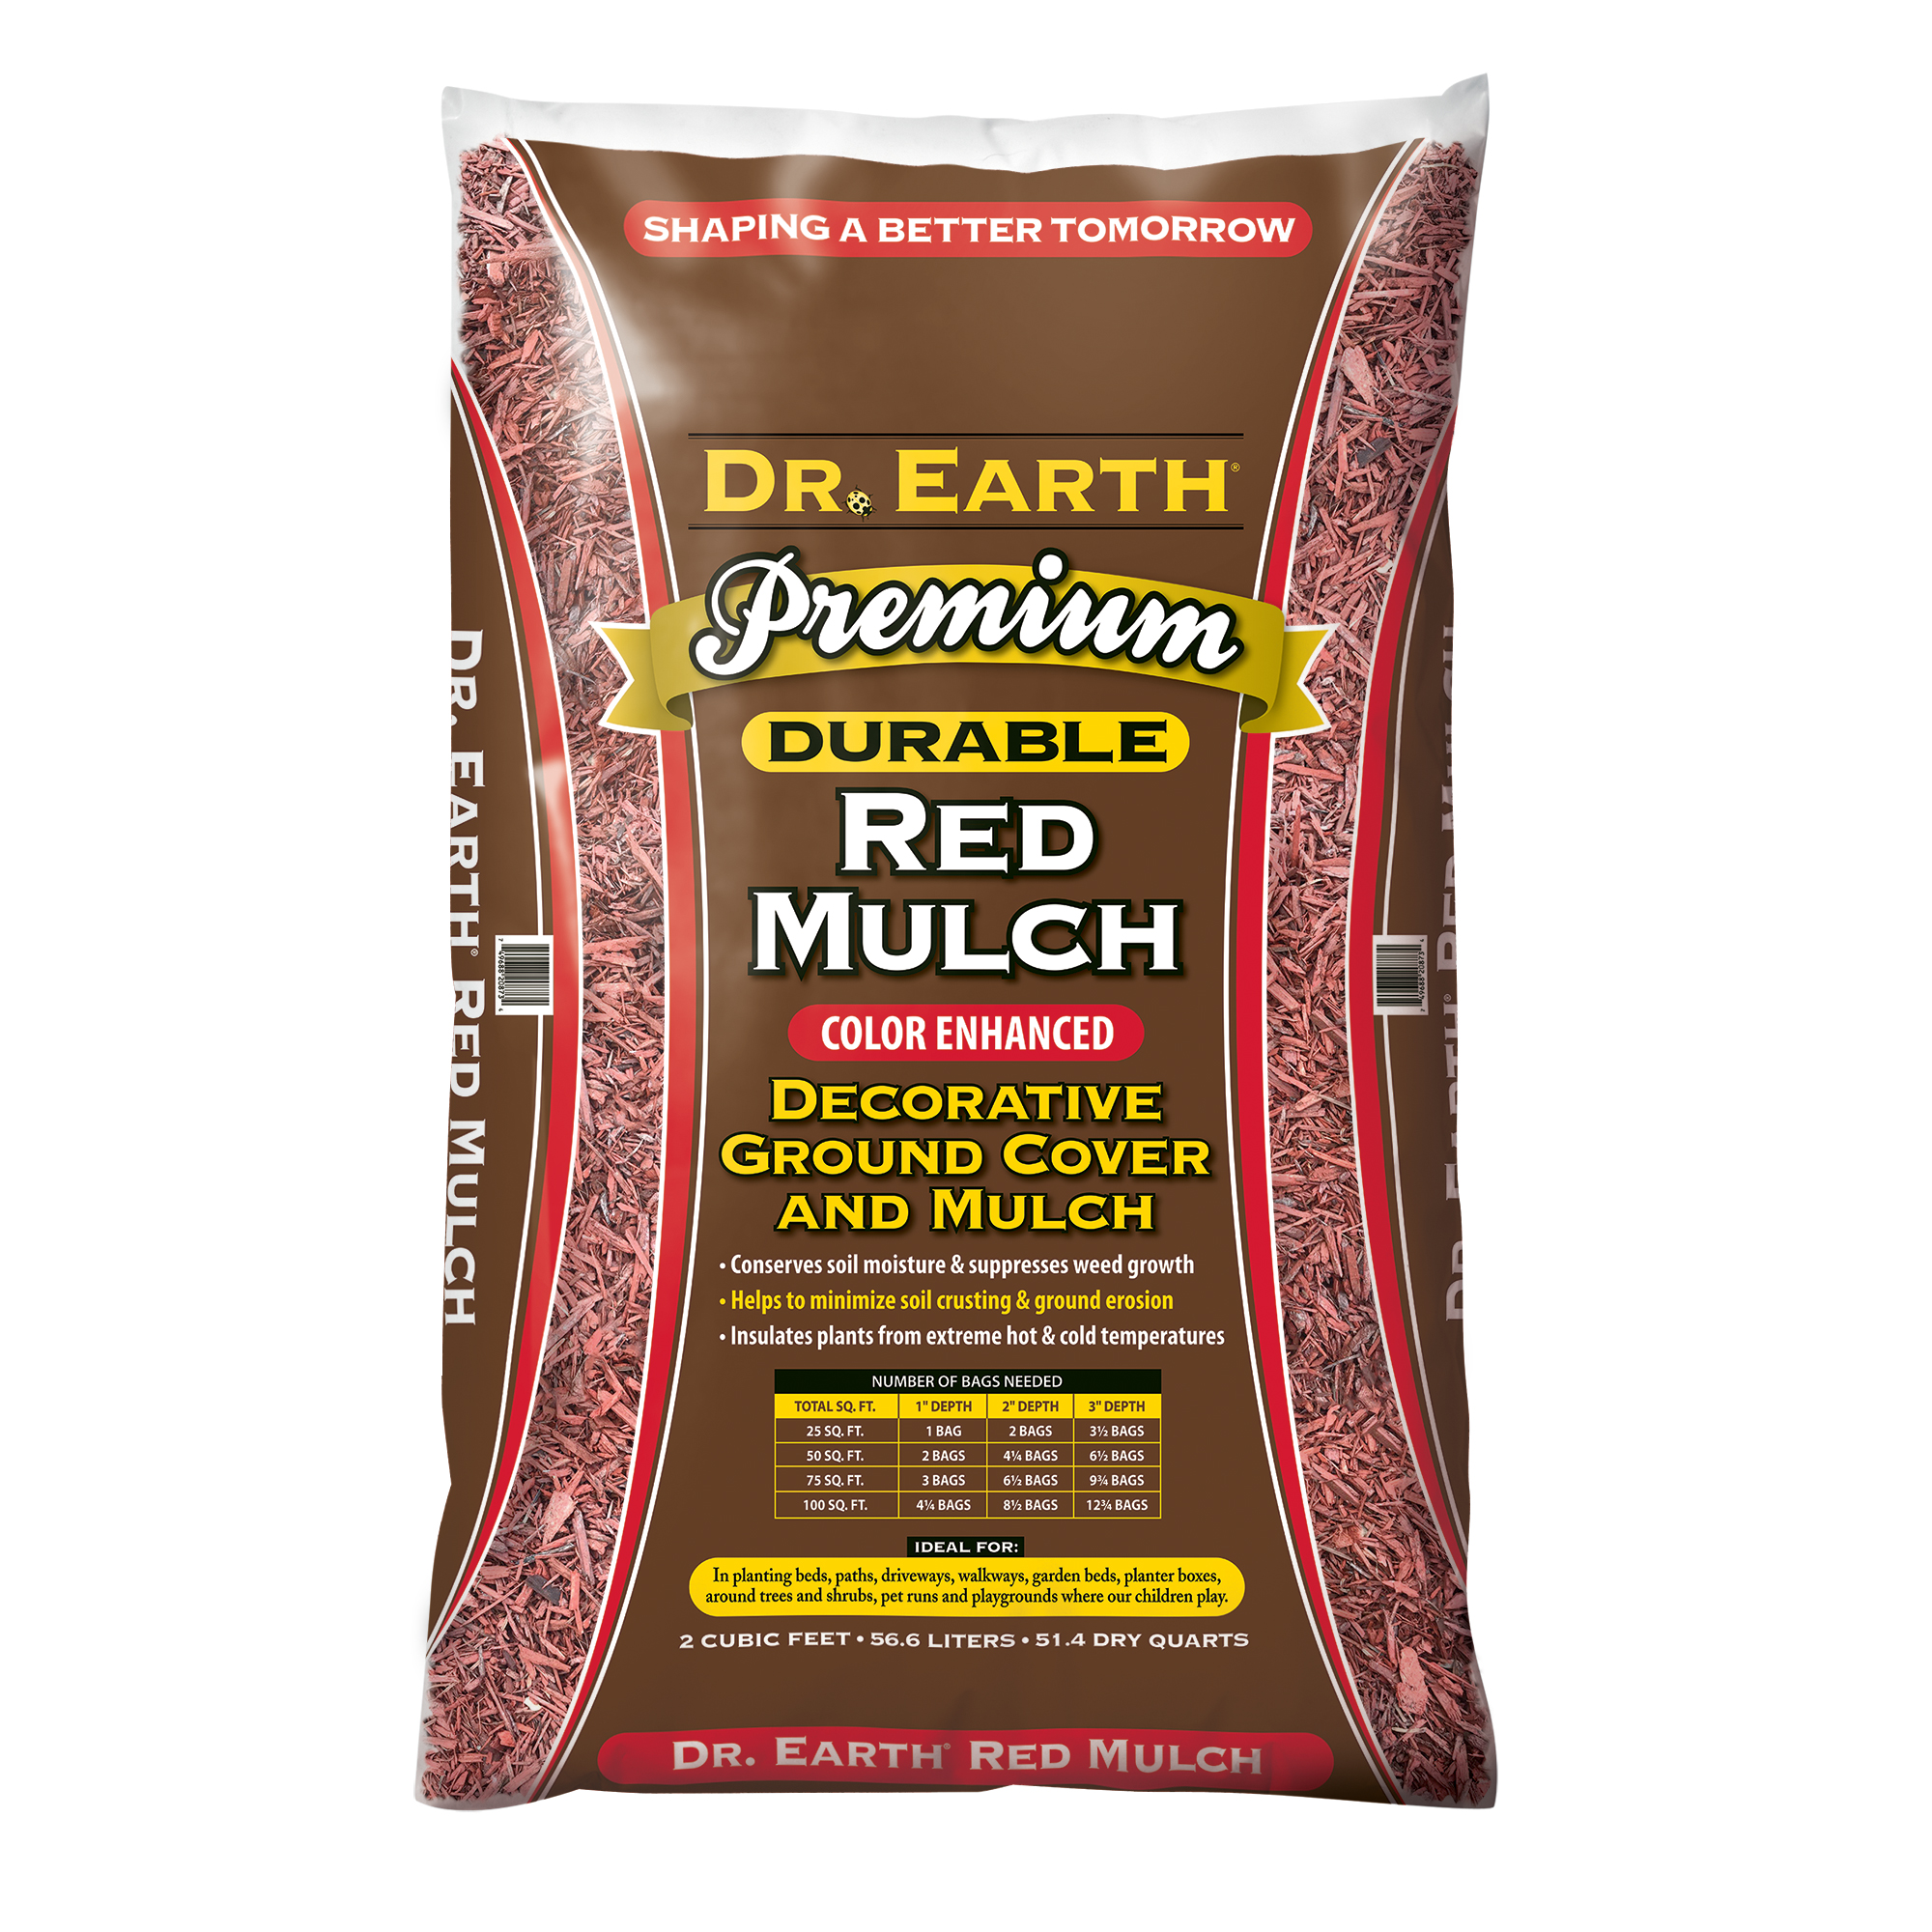 DR. EARTH PREMIUM  COLOR ENHANCED  RED MULCH DECORATIVE GROUND COVER